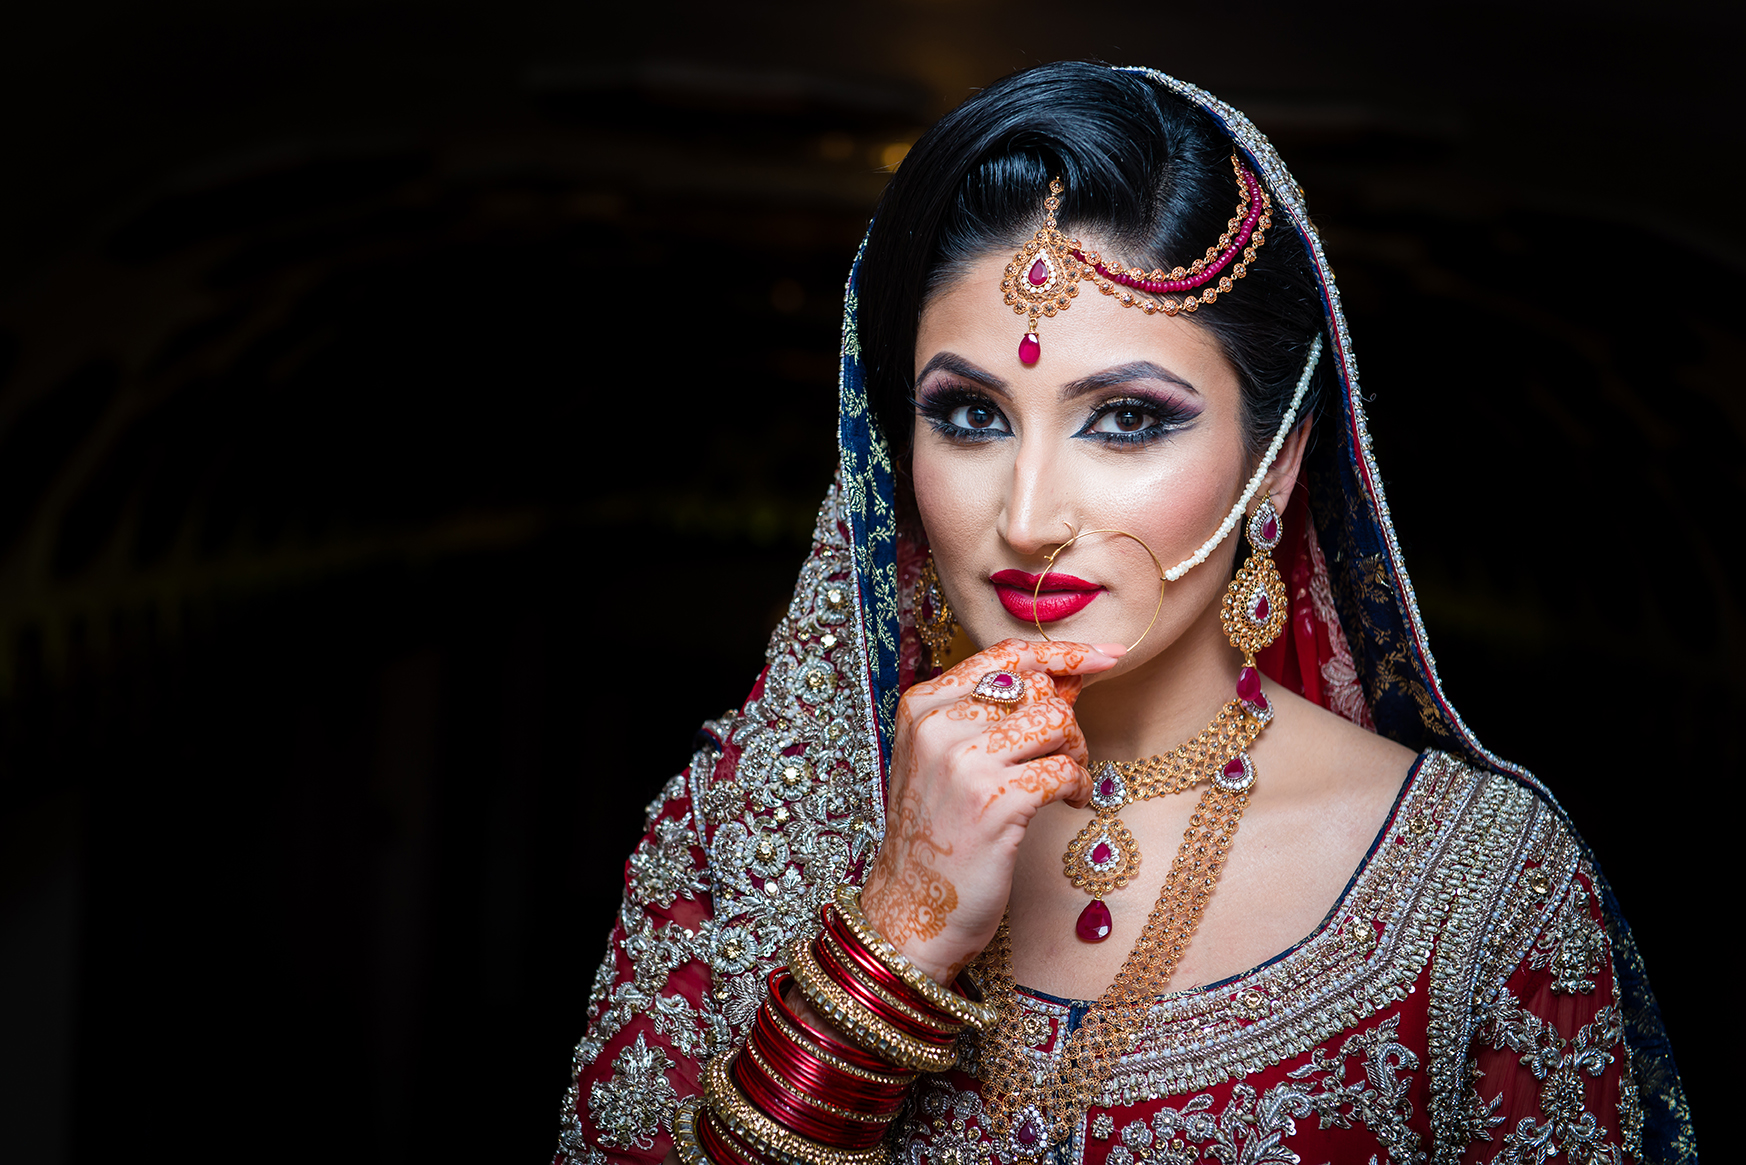 south_asian_wedding_photography_dhoom_studio_new_york9 SOUTH ASIAN WEDDINGS